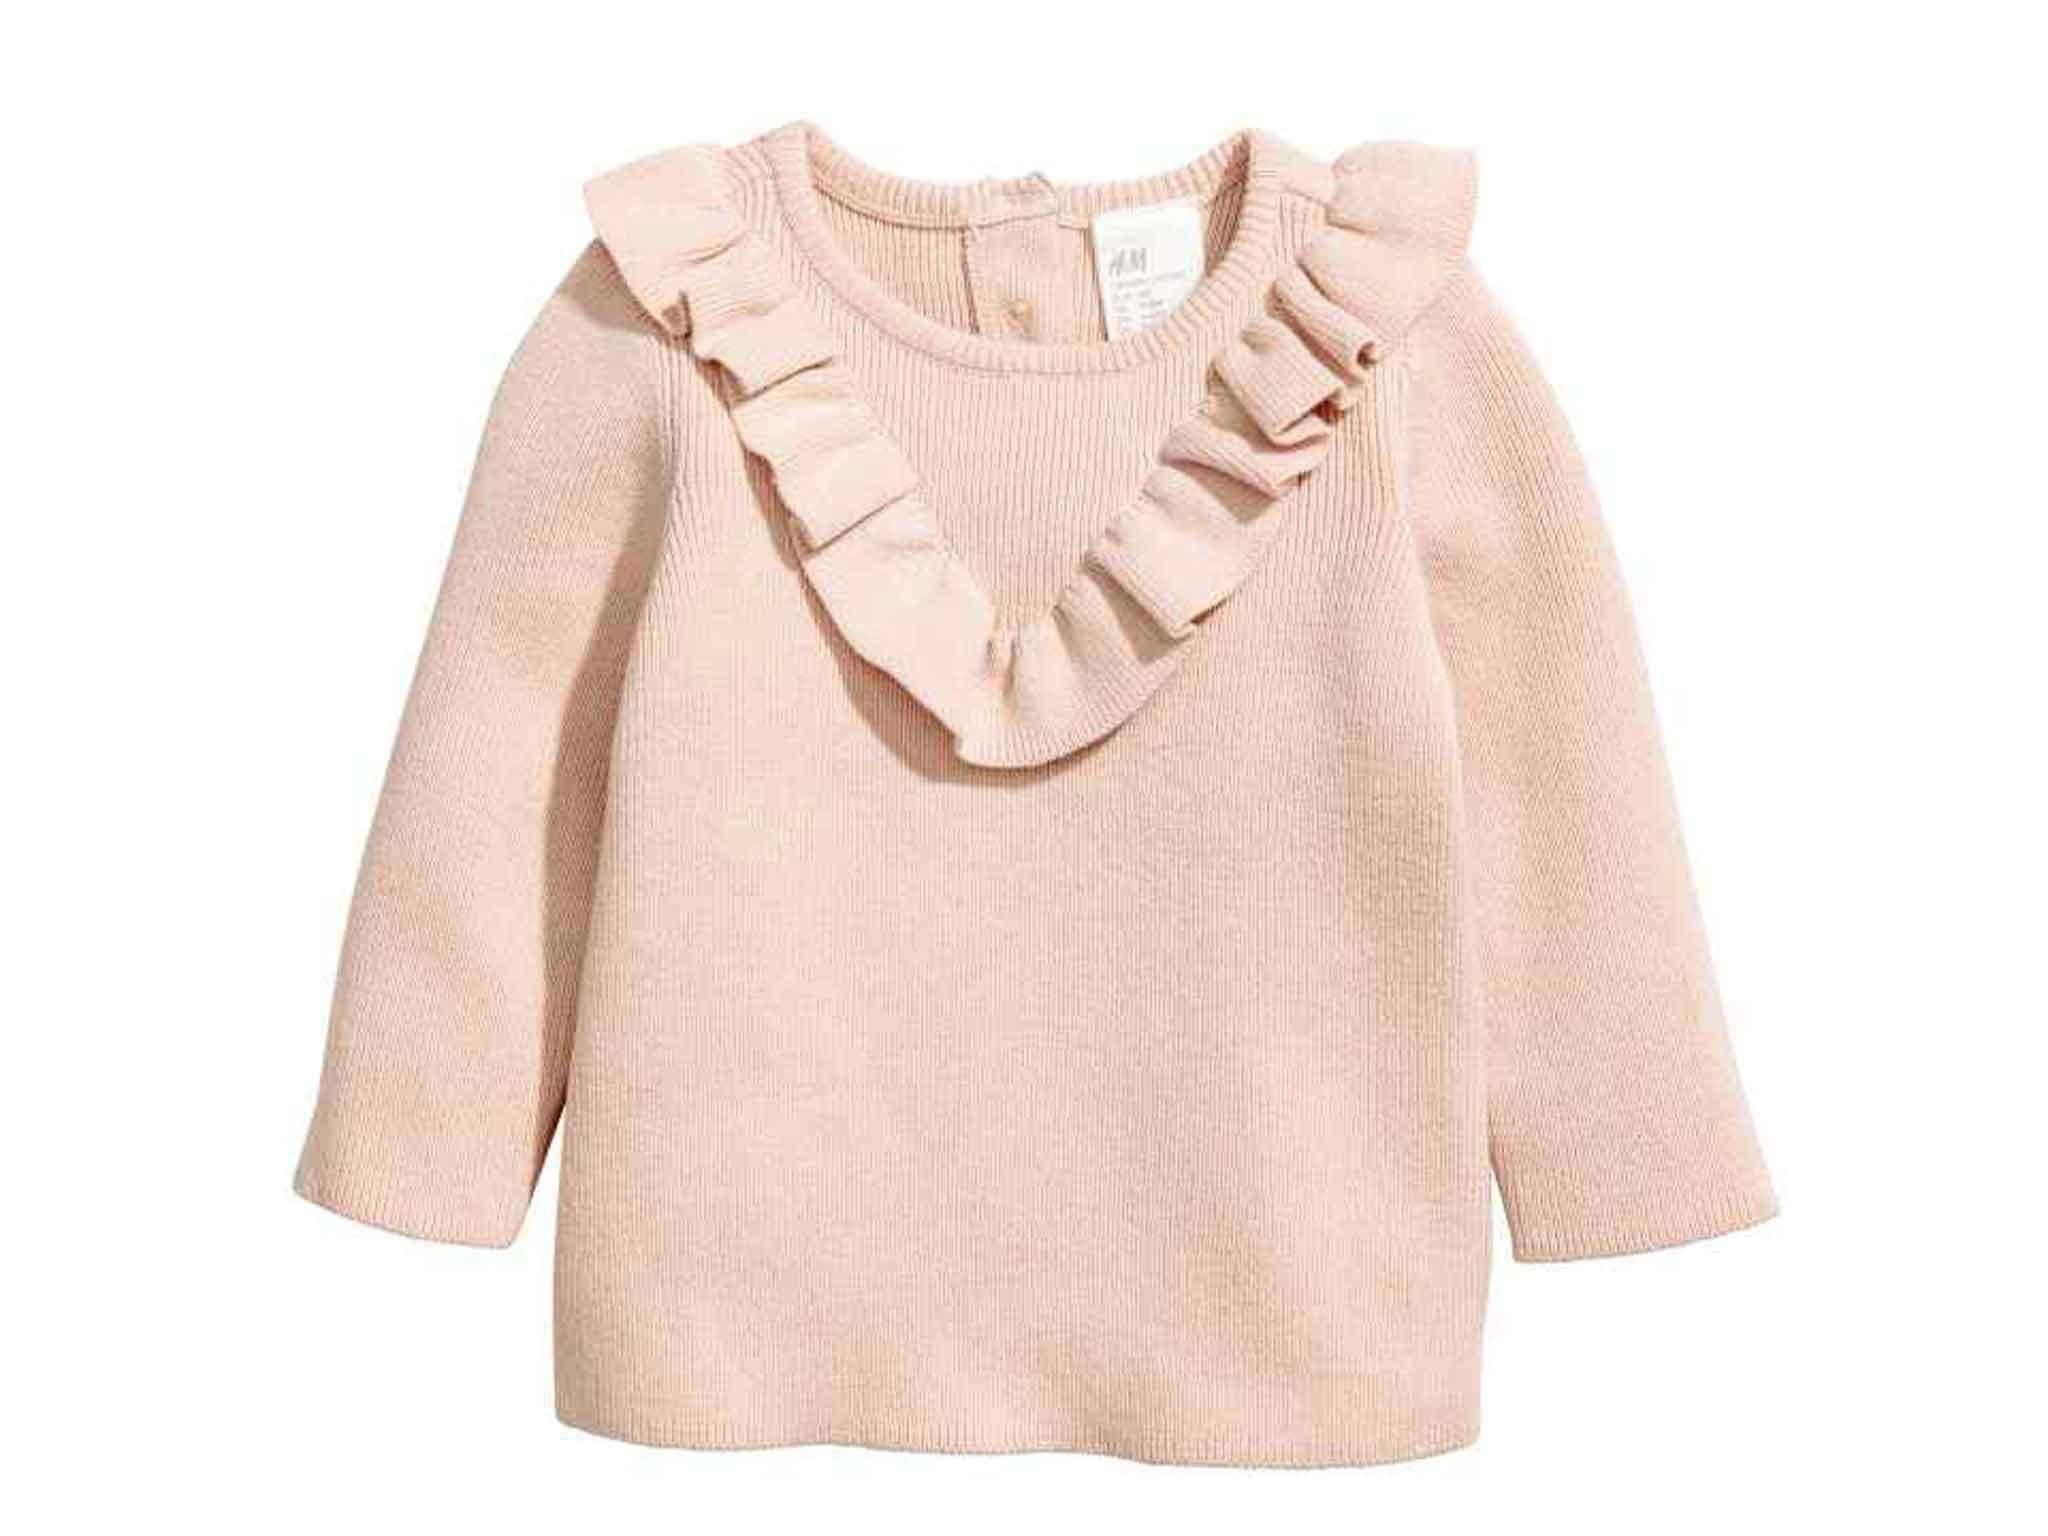 cb140f6f43a H M is known for its reasonably priced clothes and its kids  range is no  different. We like this dusky-pink